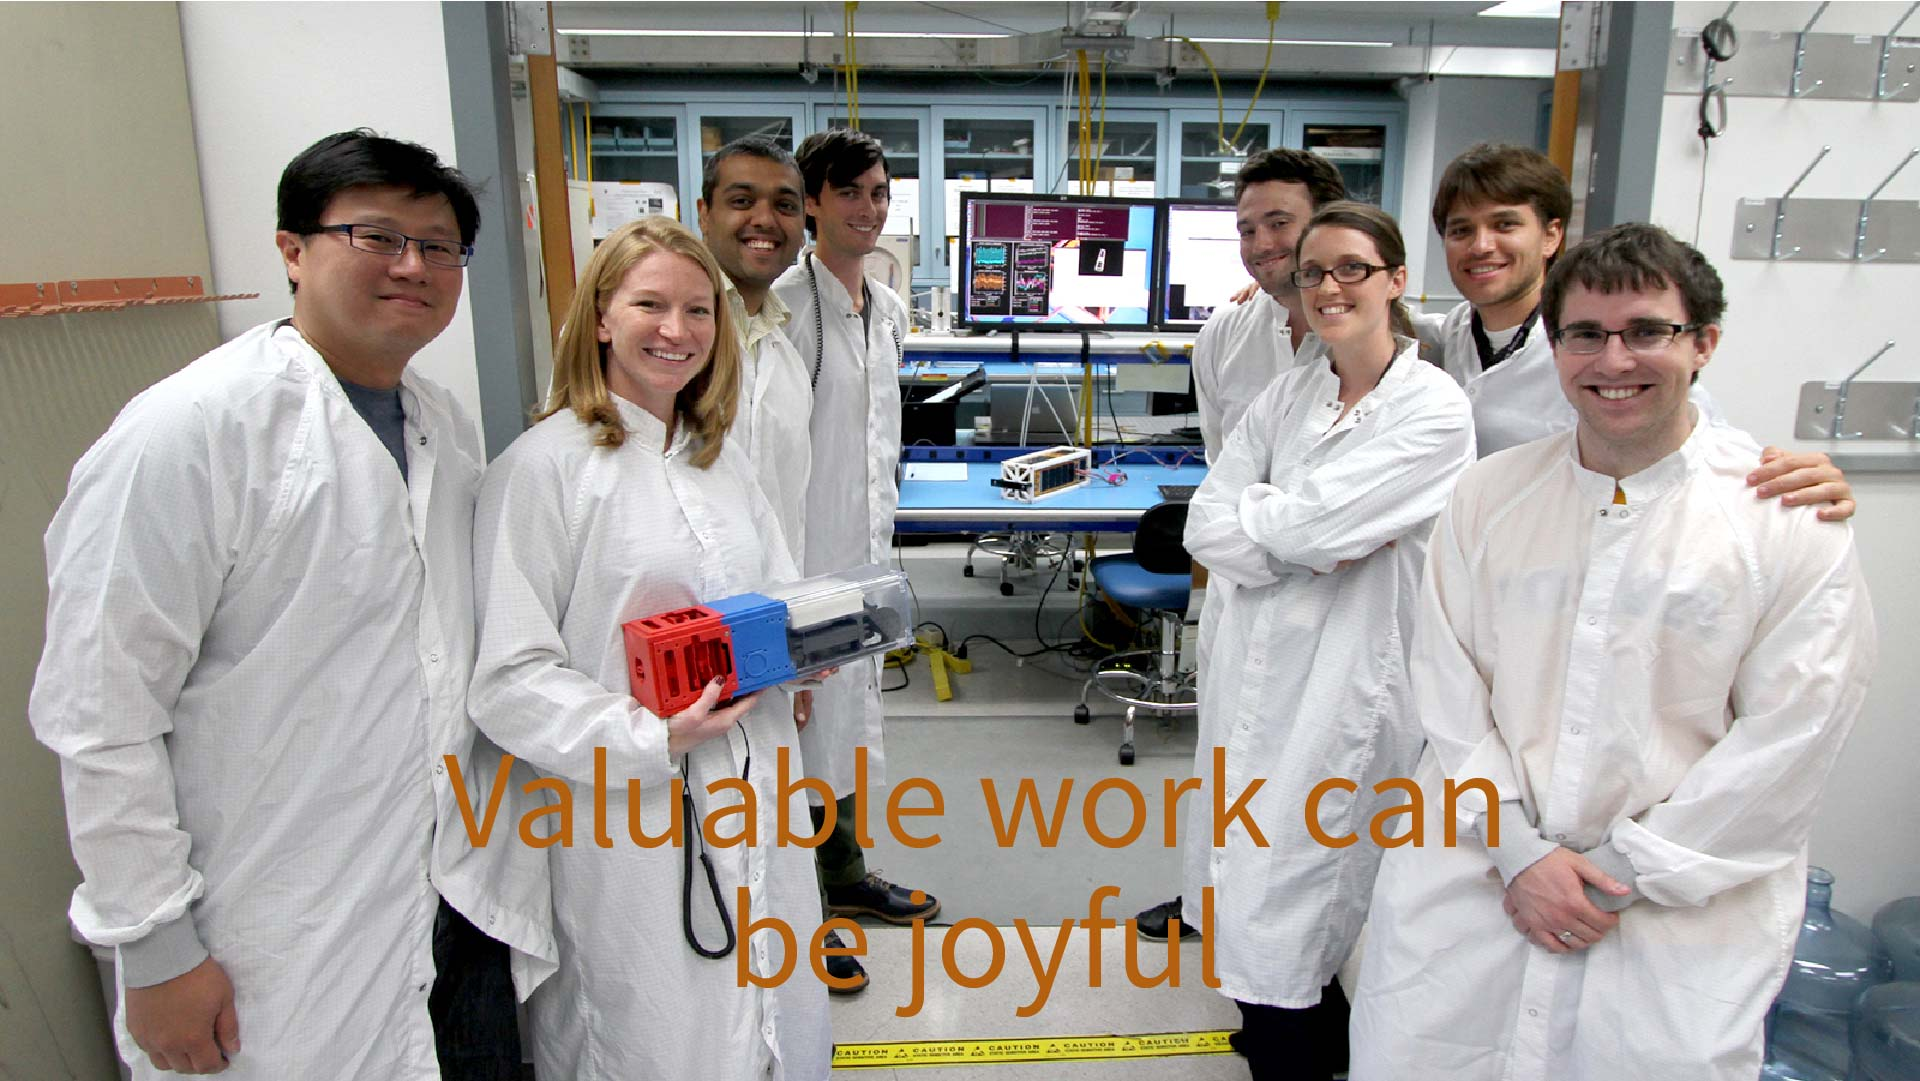 19 Valuable work can be joyful